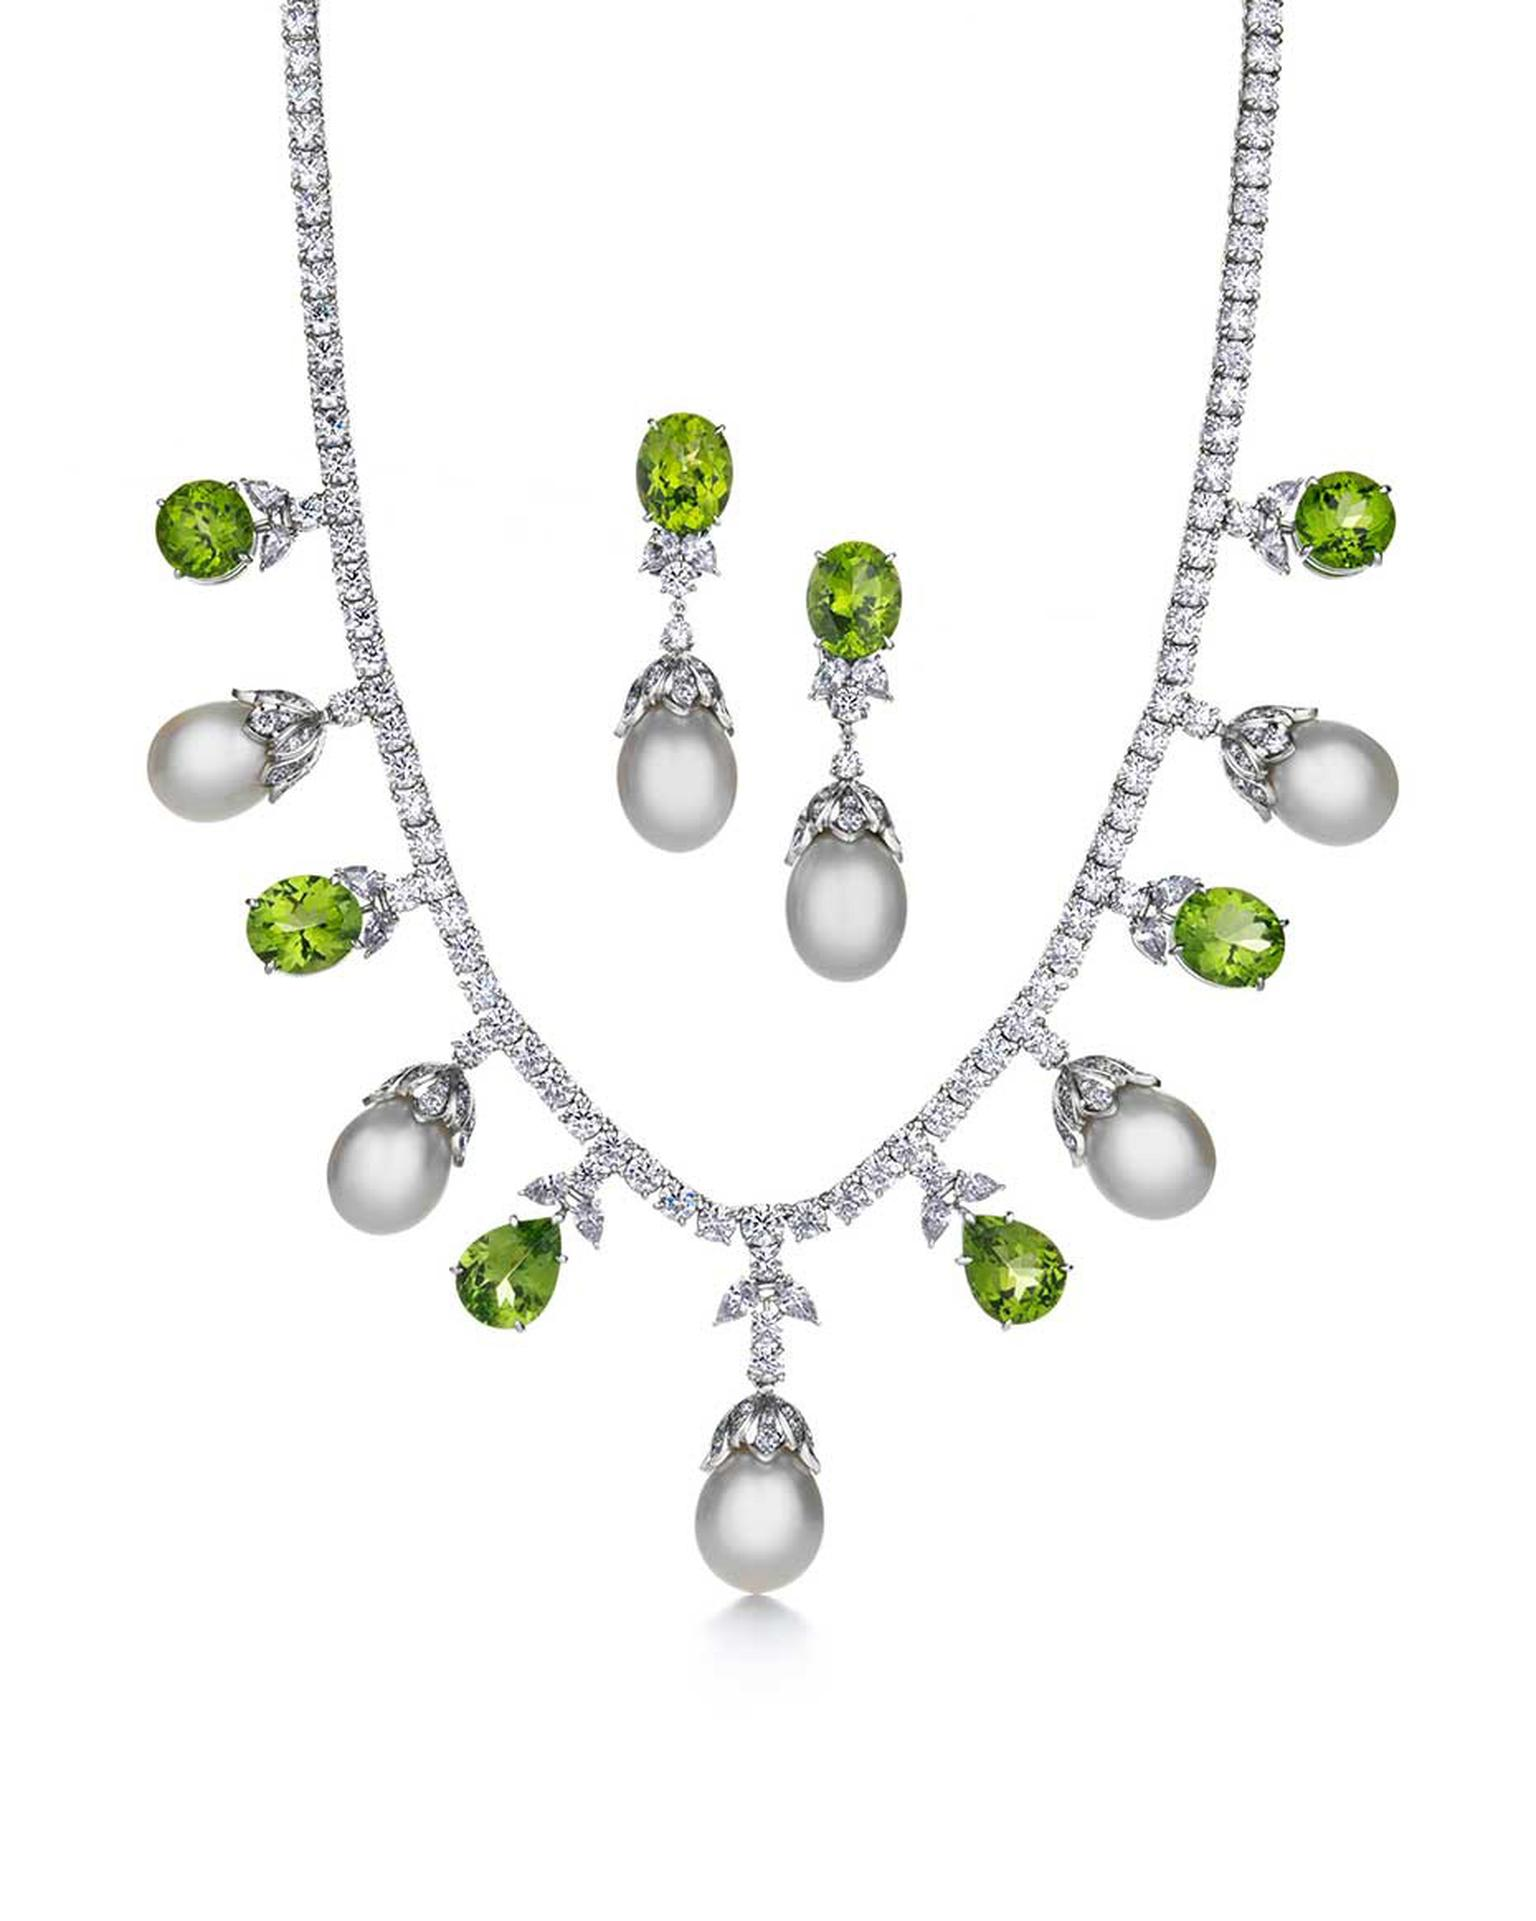 Tiffany & Co. Triple Strand platinum necklace and earrings featuring white South Sea pearls, bright green peridots and diamonds.